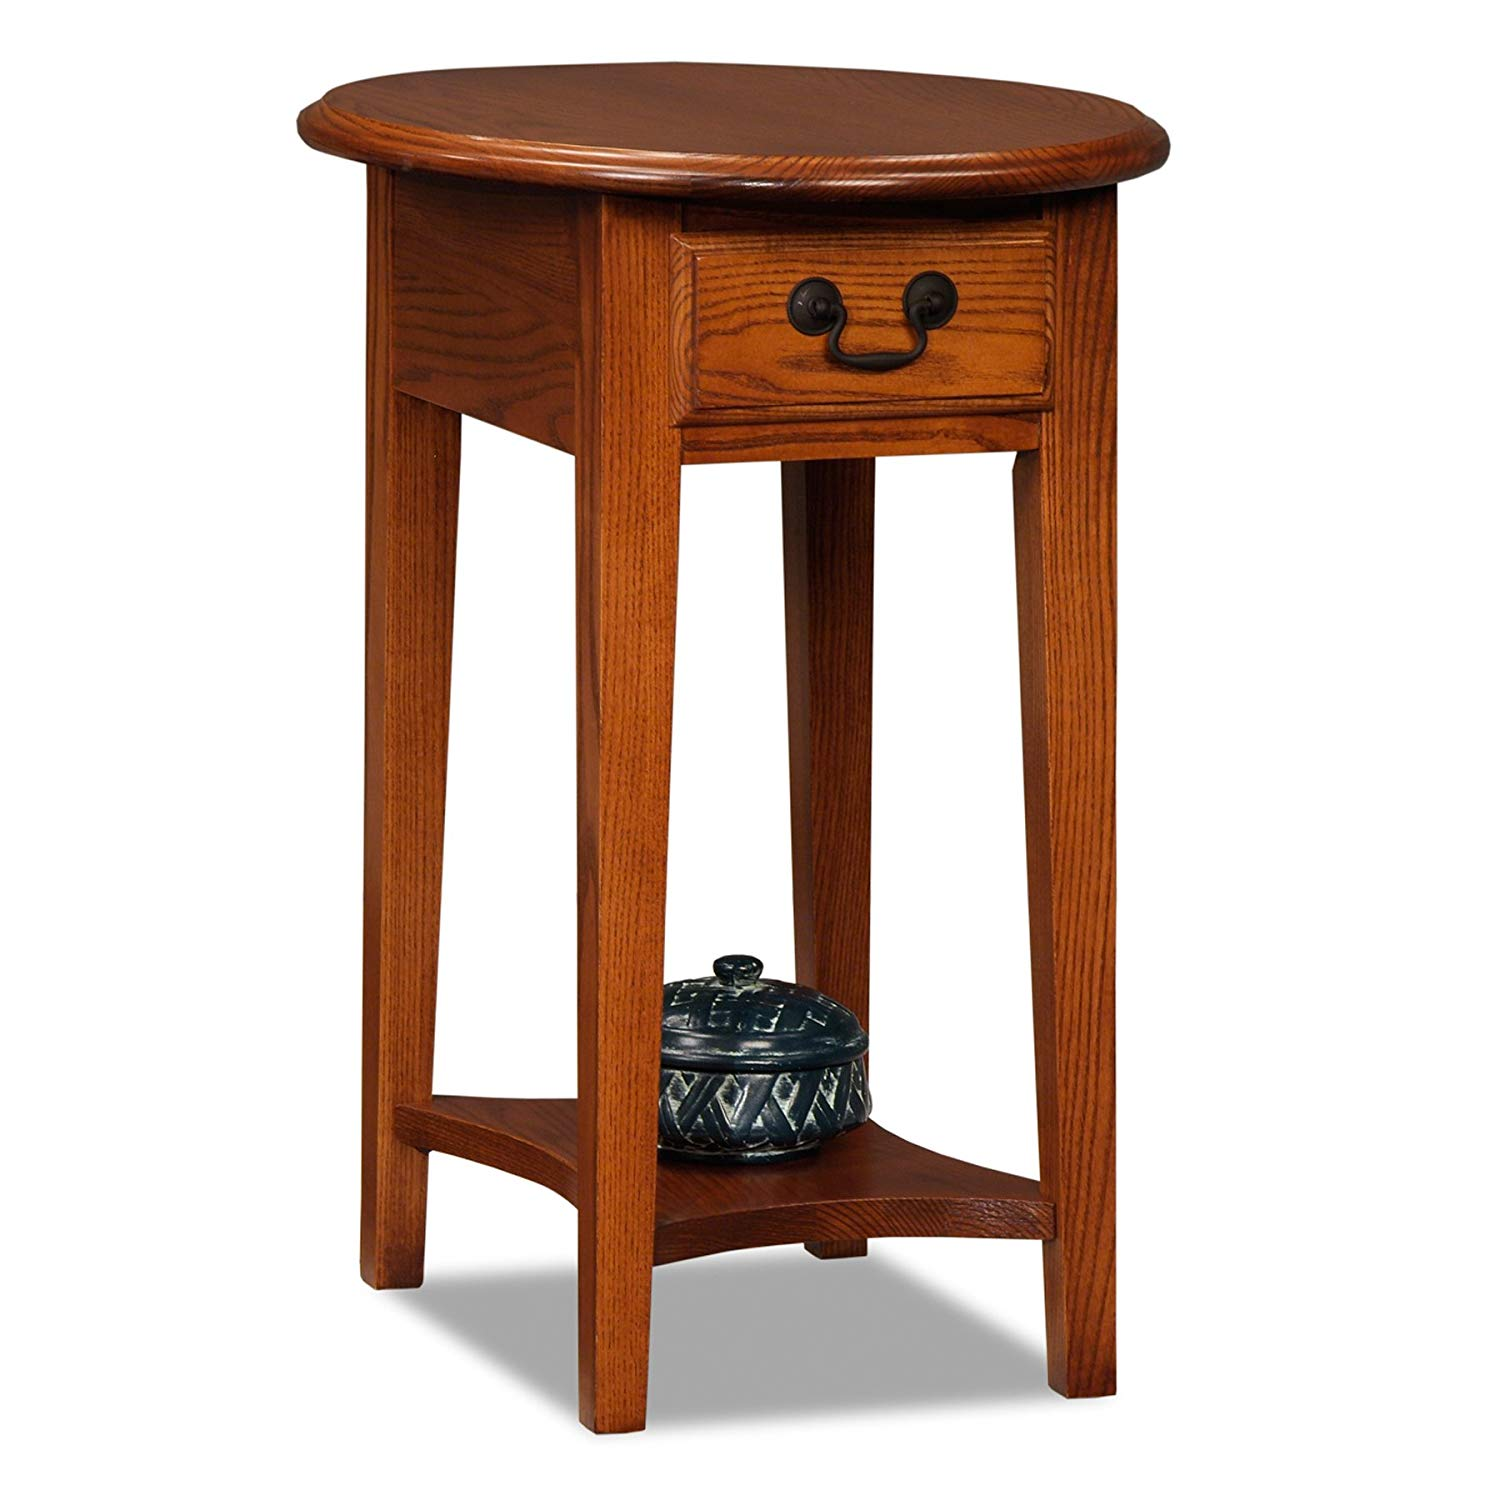 leick oval end table medium oak kitchen dining corner accent cedar nic retro nest tables contemporary room sets mirrored coffee with storage sage green lucite furniture black and